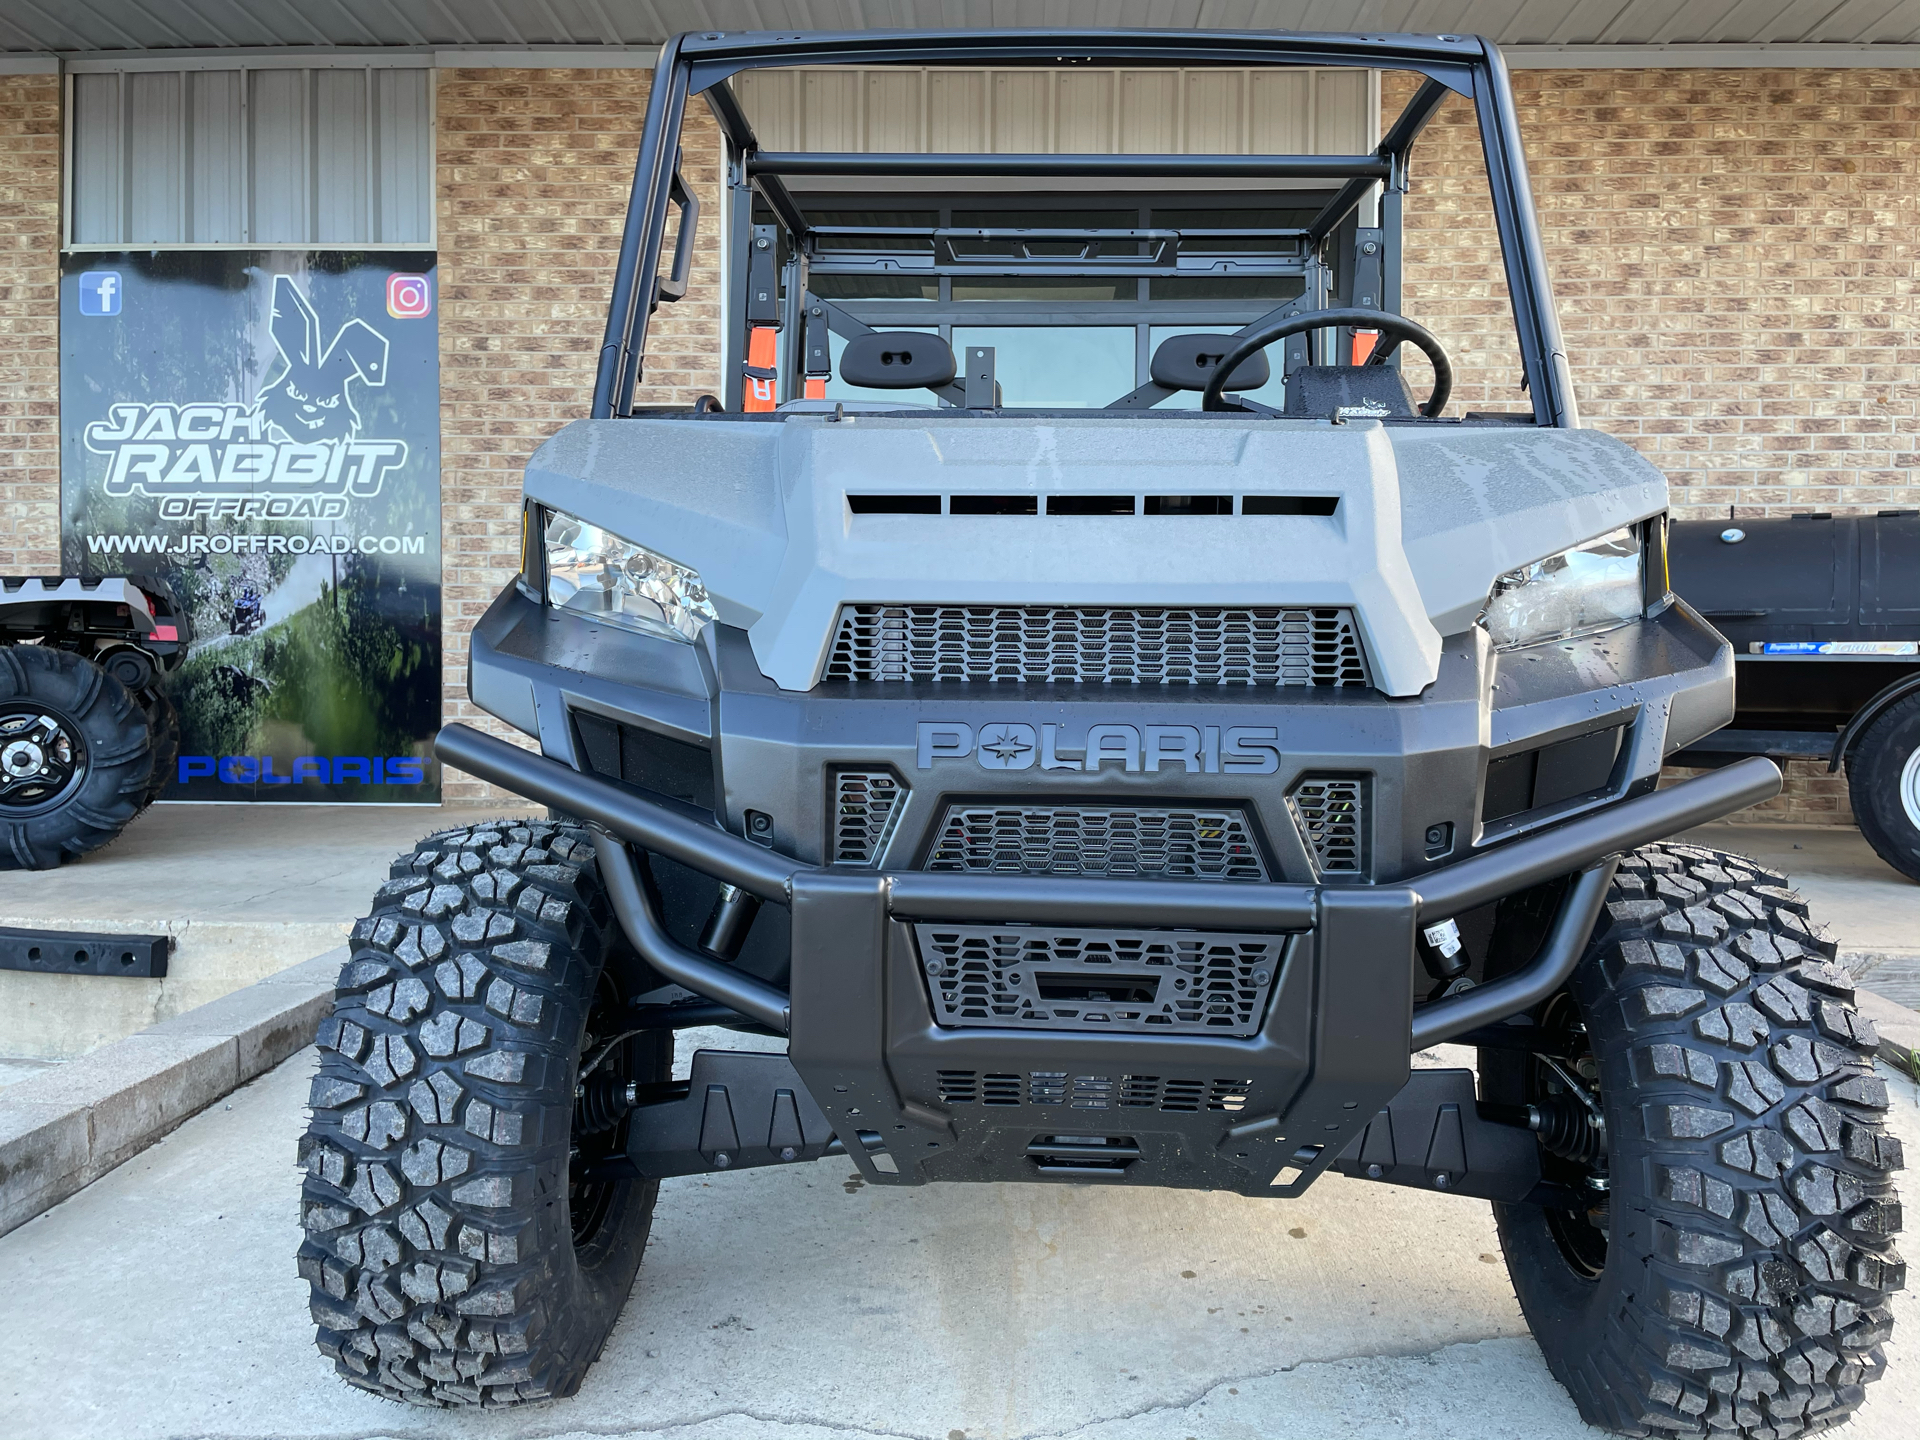 2020 Polaris PRO XD 4000G AWD in Marshall, Texas - Photo 8